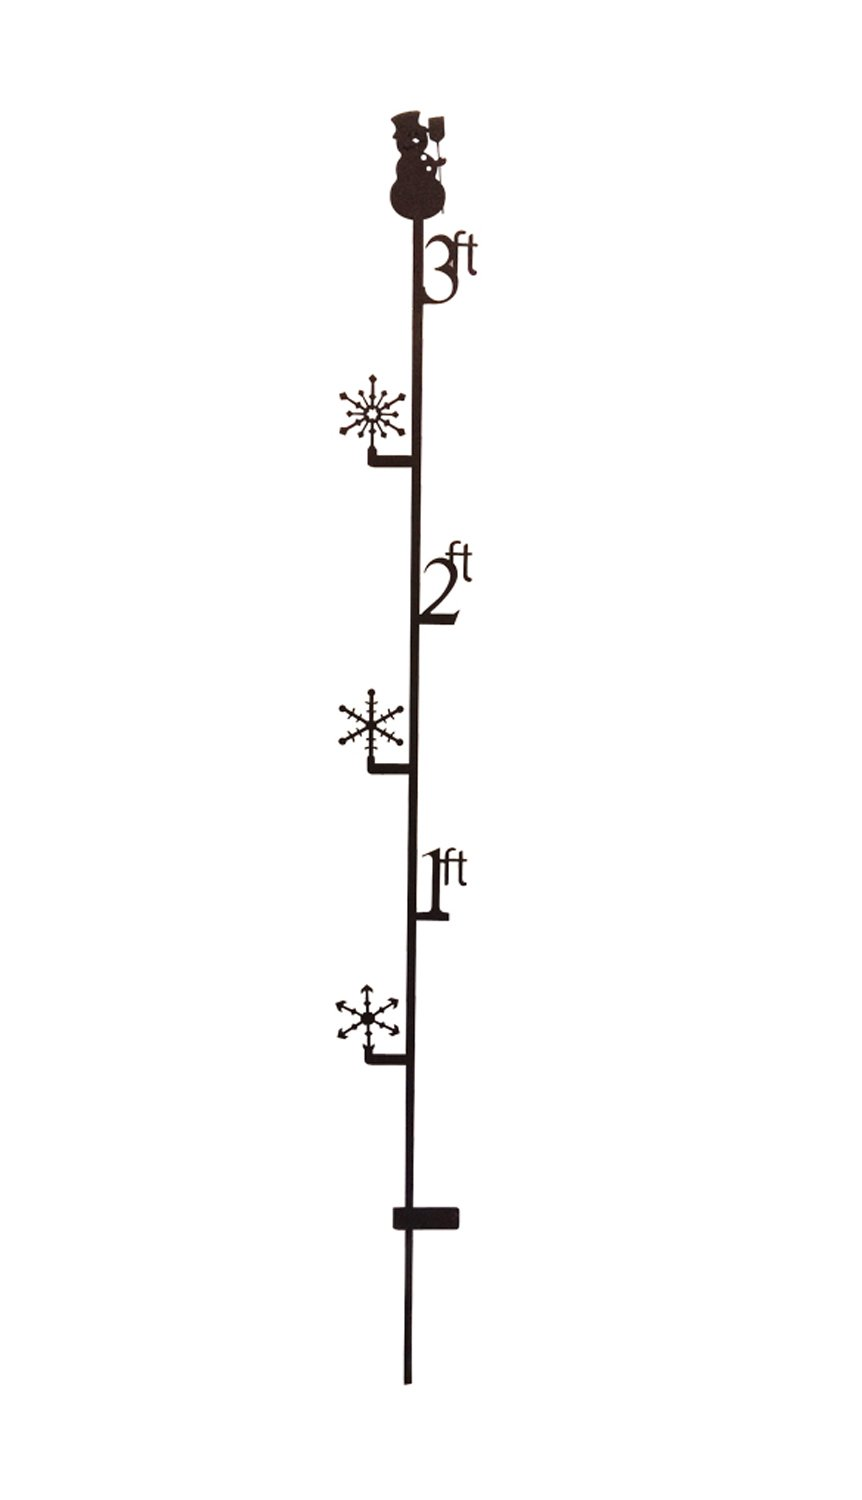 51 Inch 3 Foot Snowman Snow Gauge